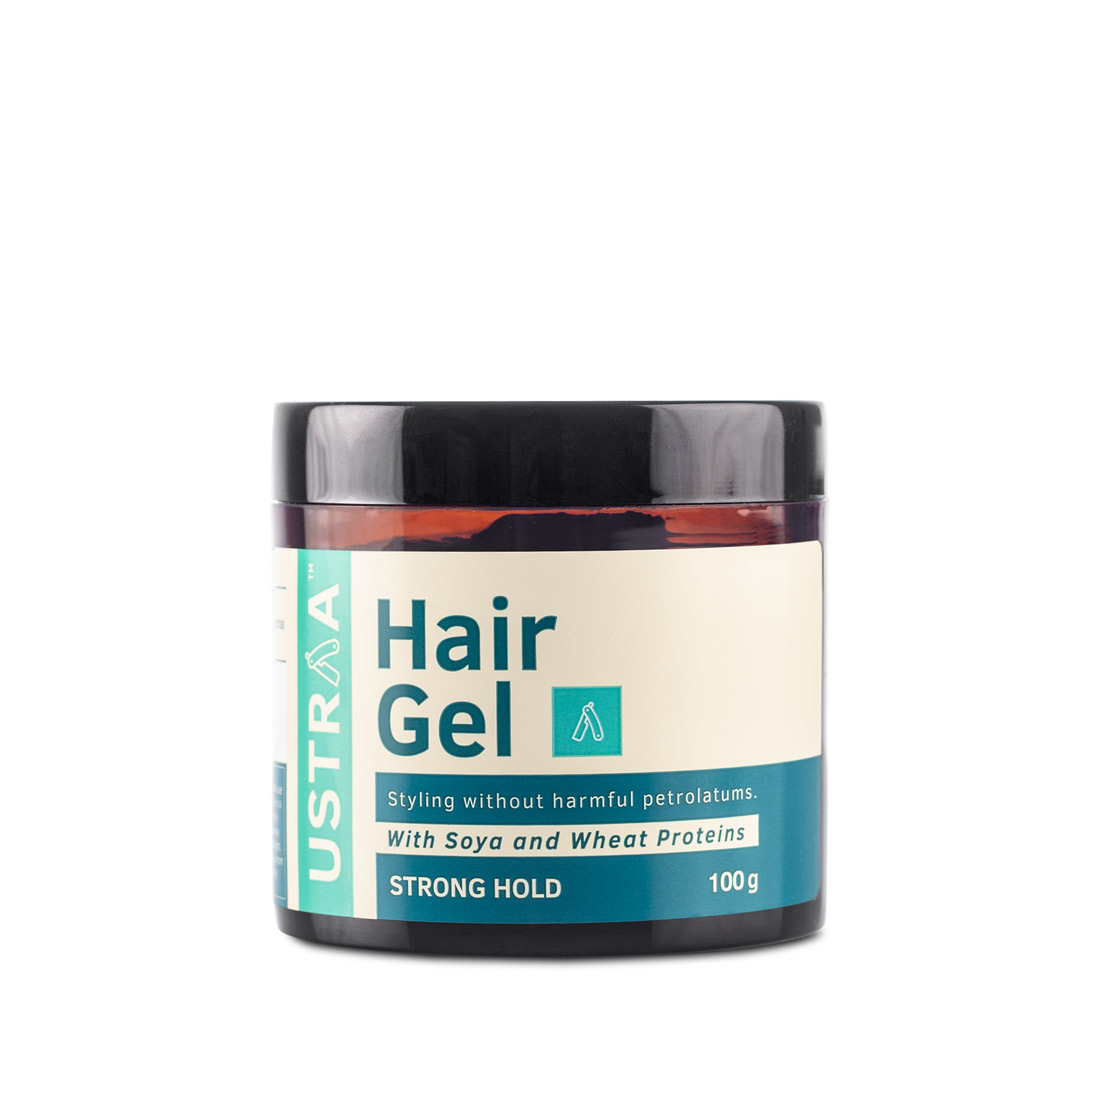 Hair Gel - Strong Hold - 100g